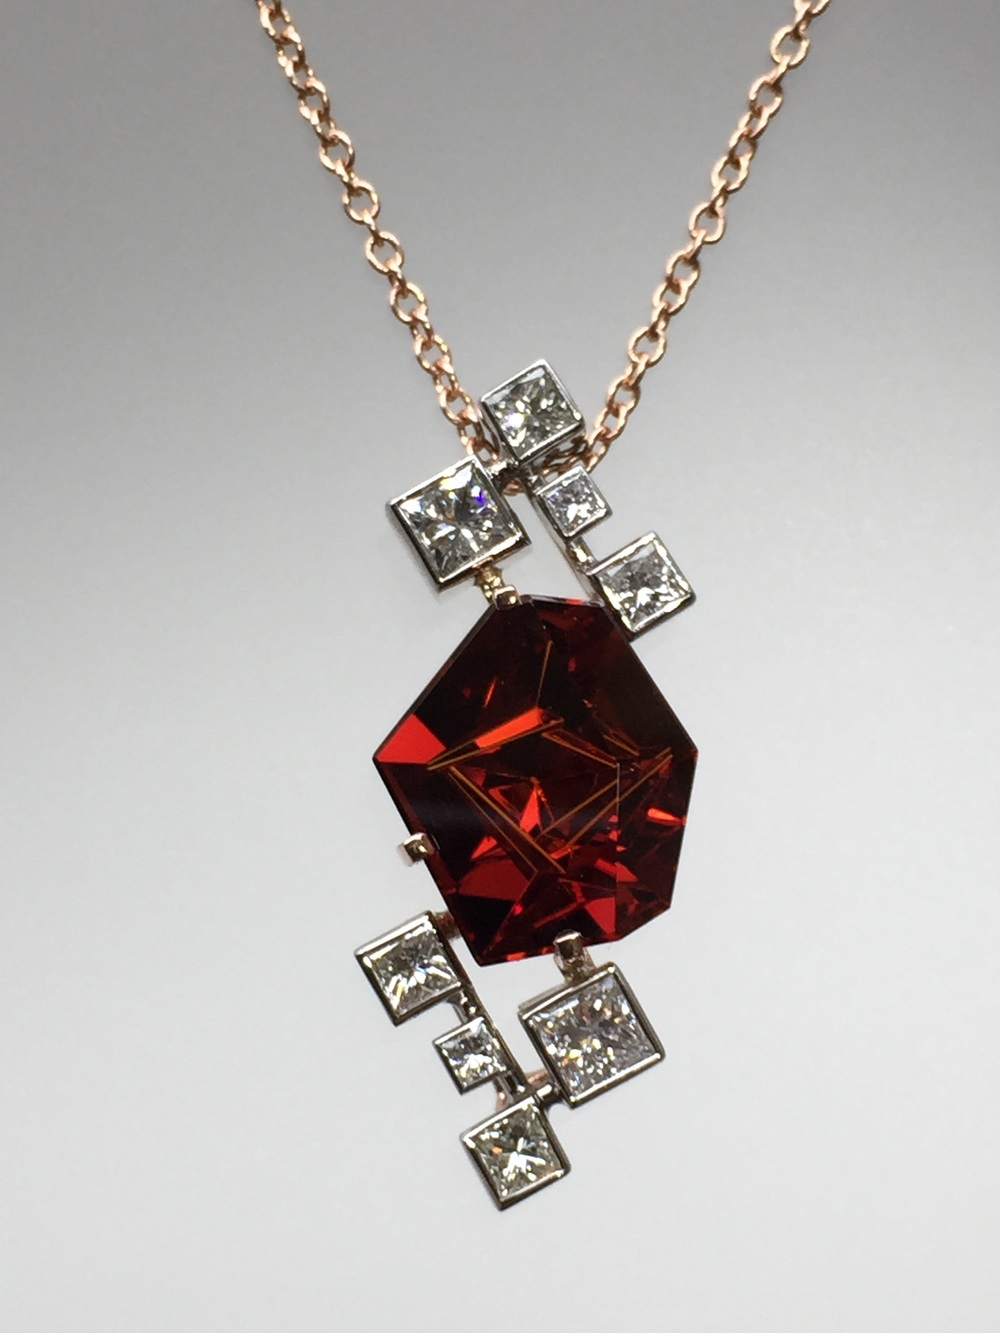 craft-revival-jewelers-unique-pendant-unqiue-necklace-garnet-pendant-bezel-set-diamonds-rose-gold-necklace-munstiener-garnet